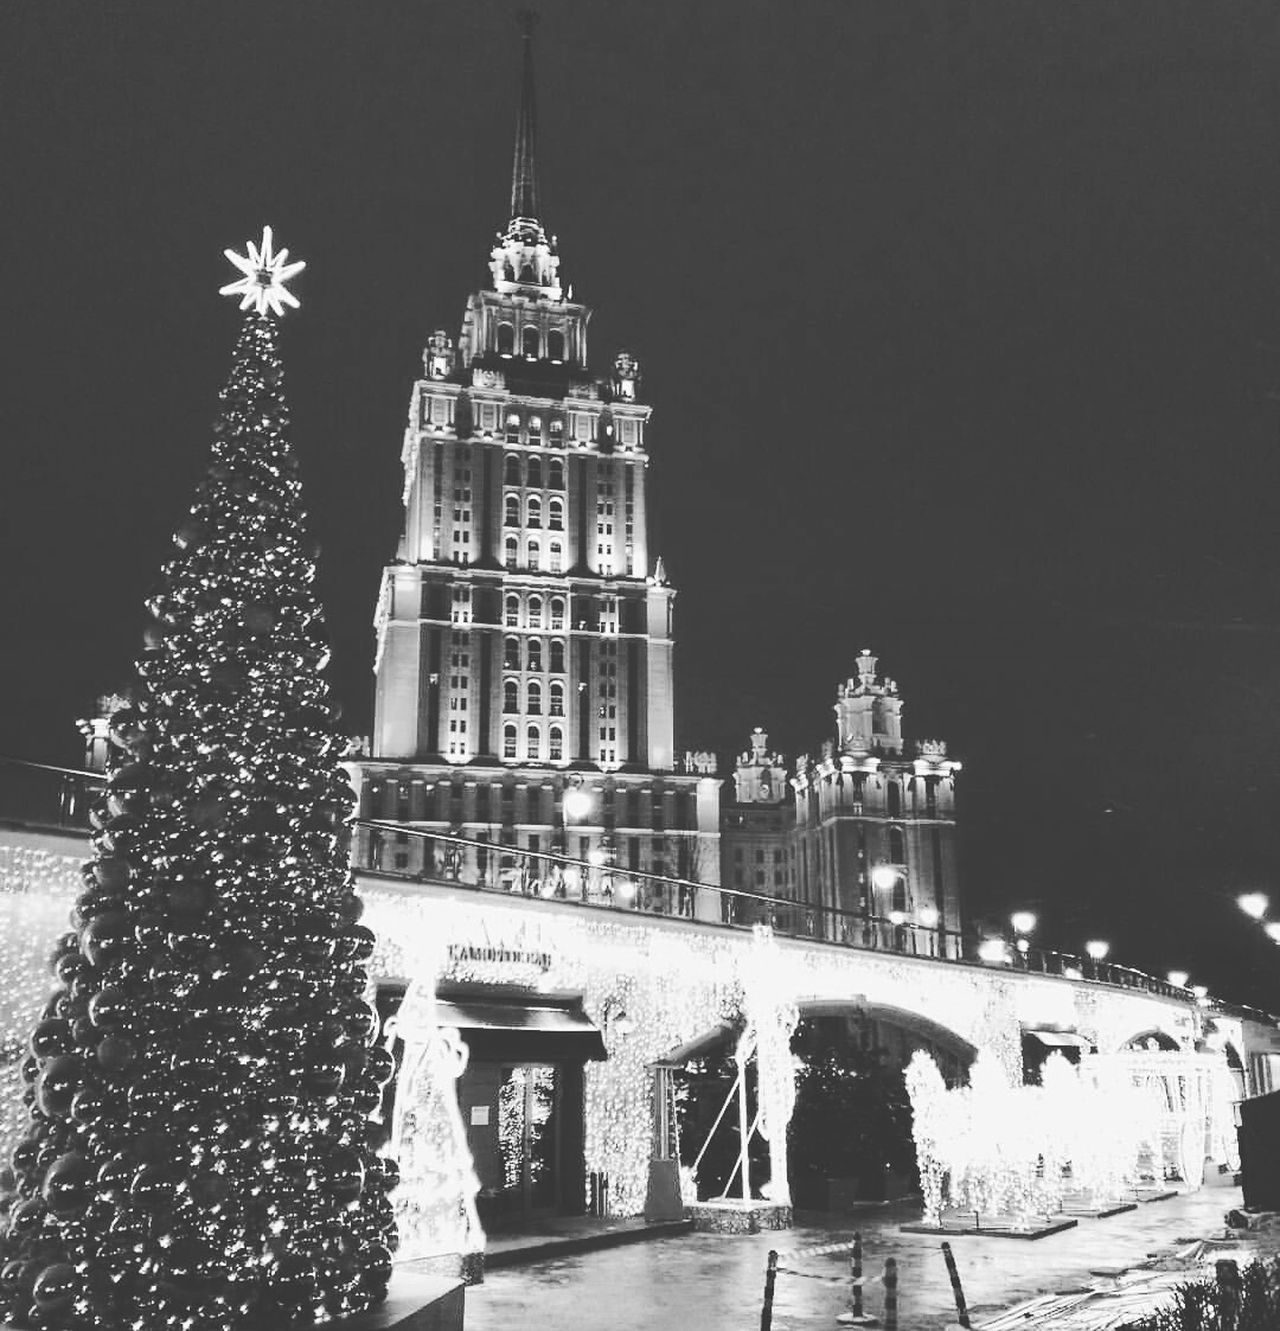 Moscow Christmas Tree Architecture Built Structure Soviet Architecture Christmas Tree Celebration Night Travel Destinations Christmas Decoration Christmas Lights Clock Tower Holiday - Event Winter No People Tree Topper City Illuminated Sky Snow Clock Christmas Market